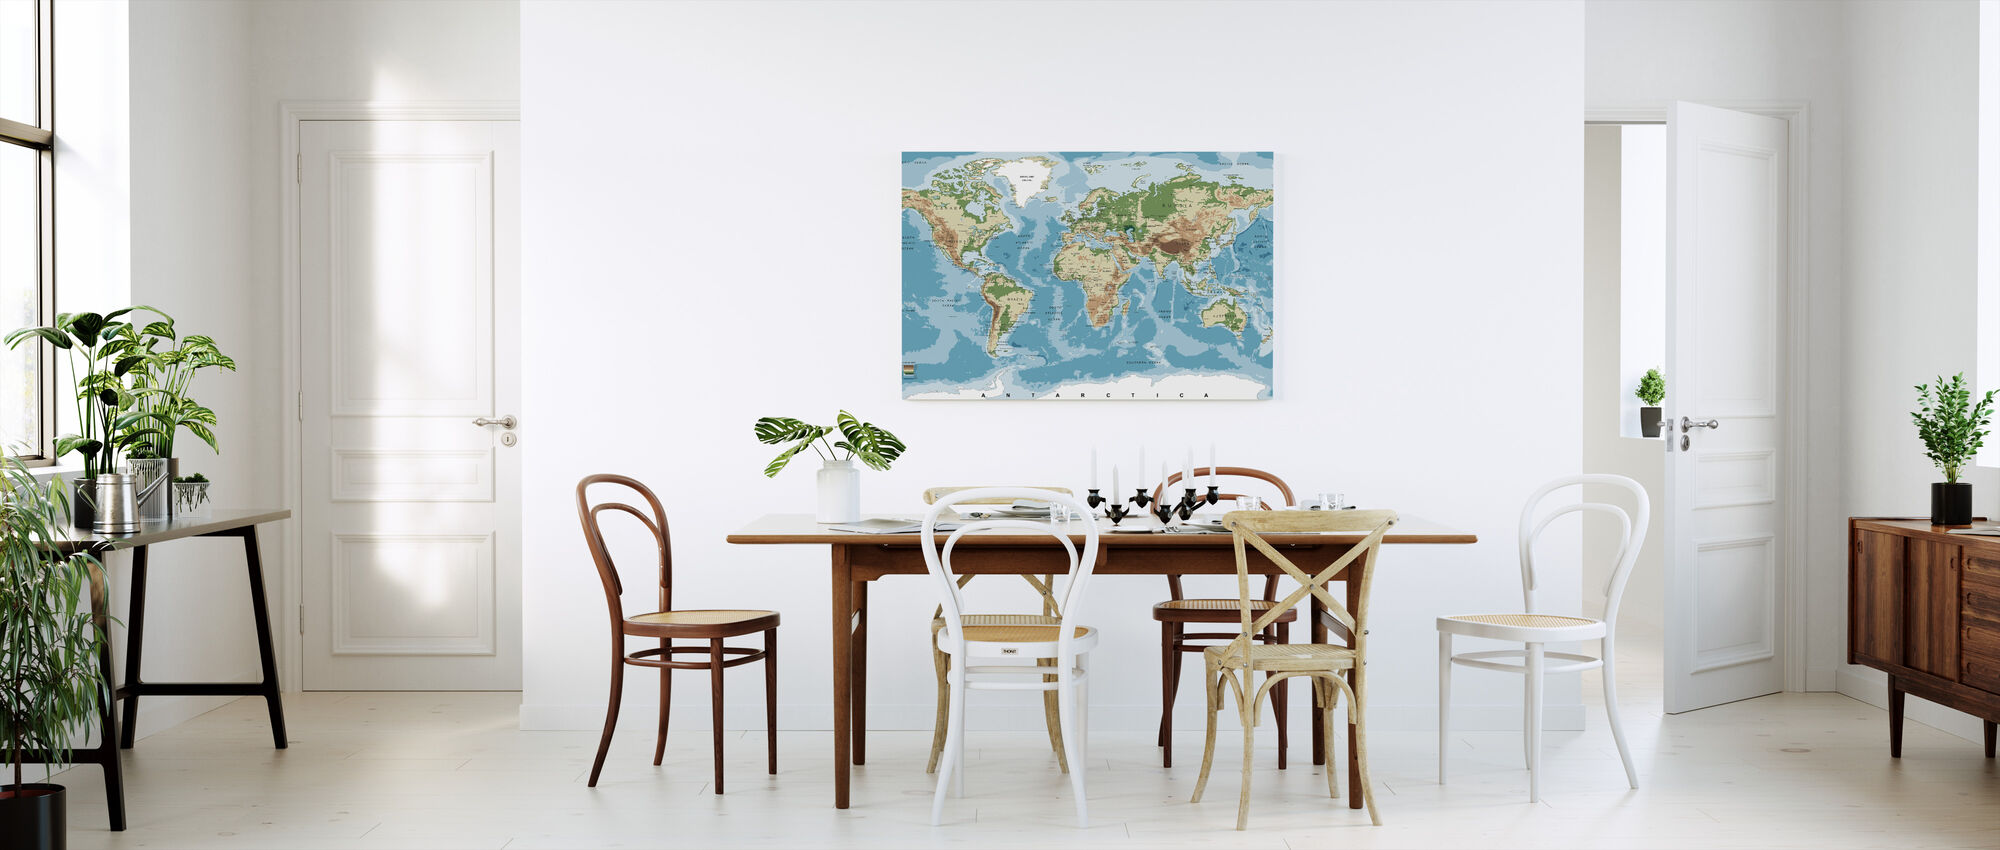 World Map with Elevation Tints - Canvas print - Kitchen